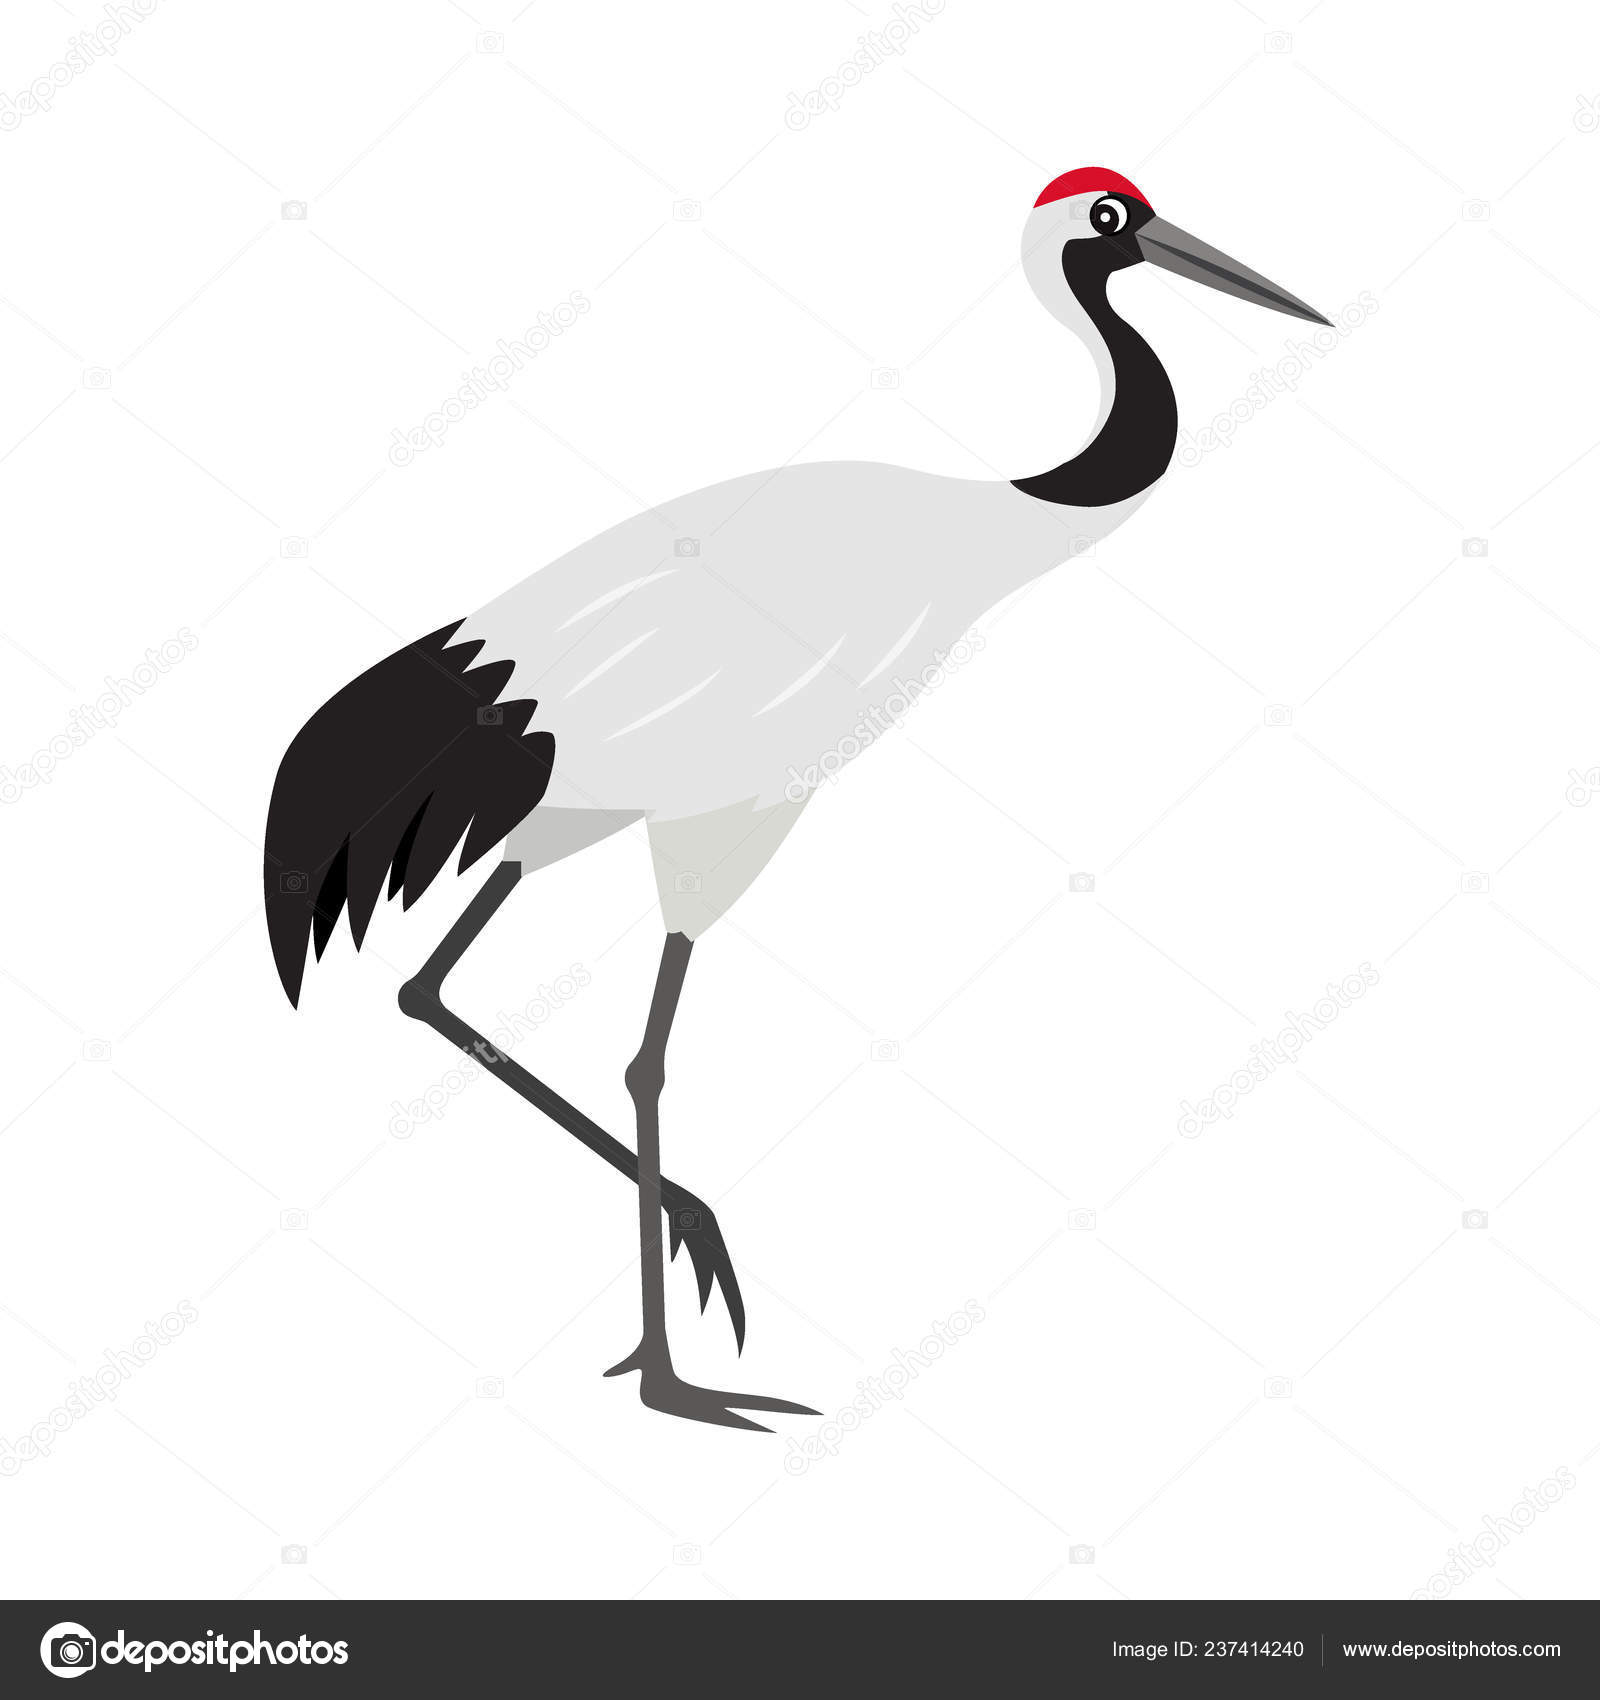 Friendly Cute Red Crowned Or Japanese Crane Icon Colorful Wild Bird Stock Vector C Marysan 237414240 Daffy duck elmer fudd donald duck bugs bunny, duck, heroes, cartoon, bird png. https depositphotos com 237414240 stock illustration friendly cute red crowned or html